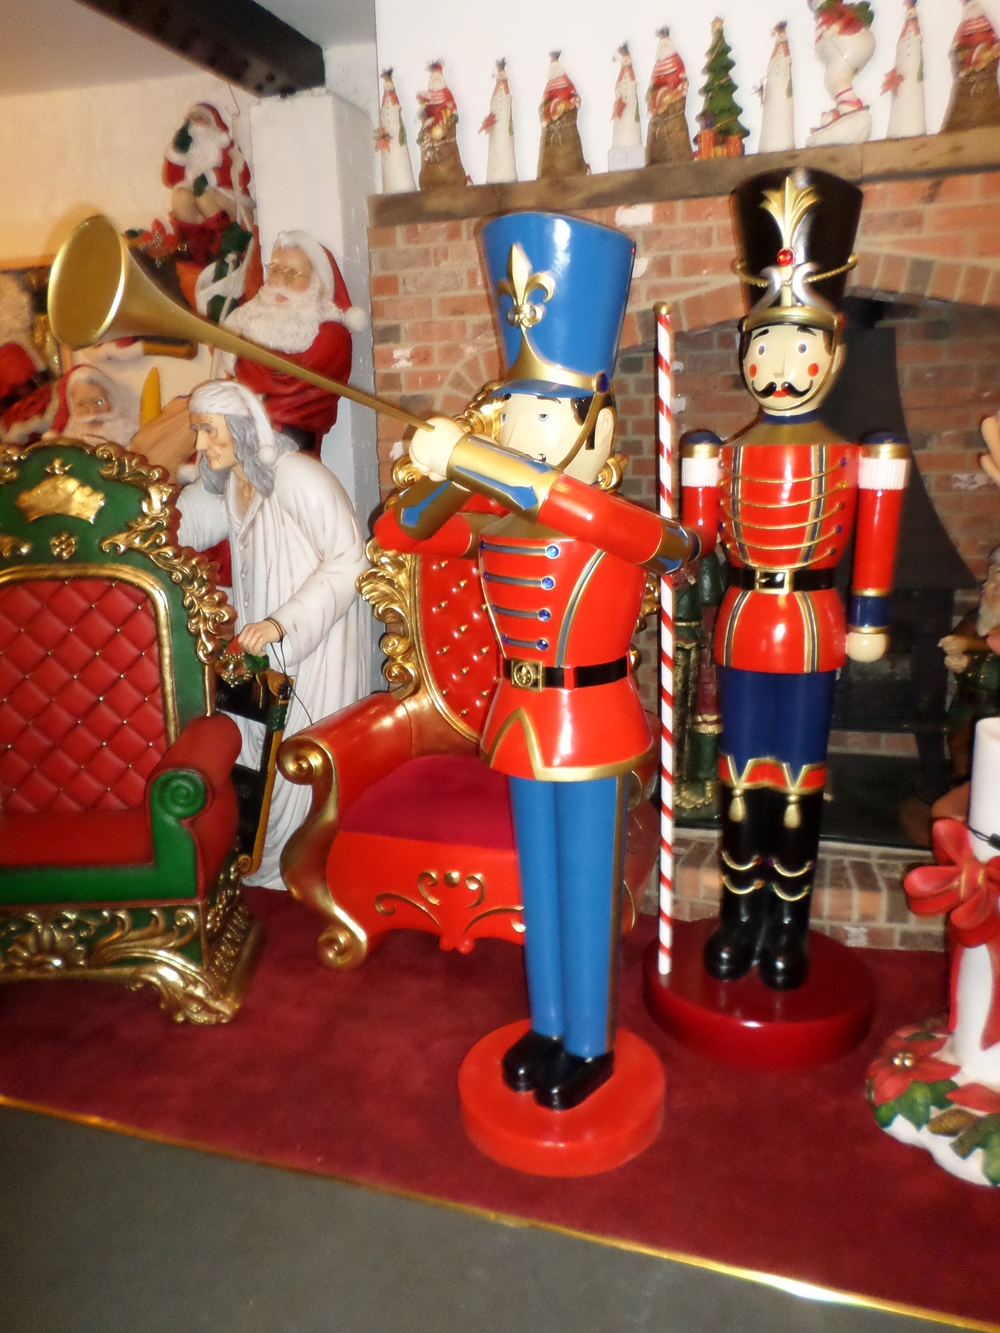 Christmas Toys For Christmas : Toy soldier with trumpet ft jr  the jolly roger